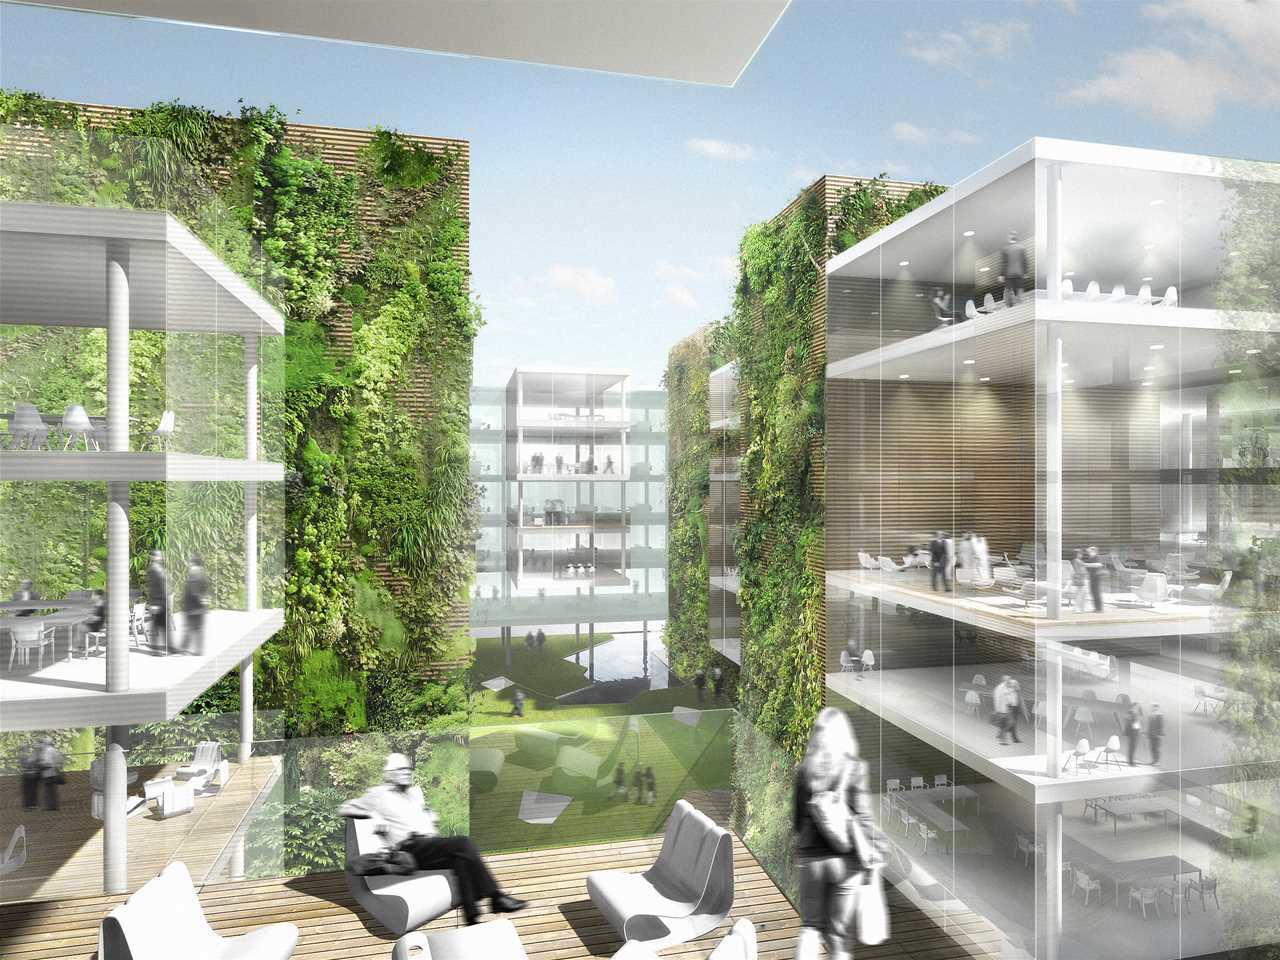 Holcim Awards Acknowledgement prize 2008 Europe: Office building with green hypercore, Milan, Italy